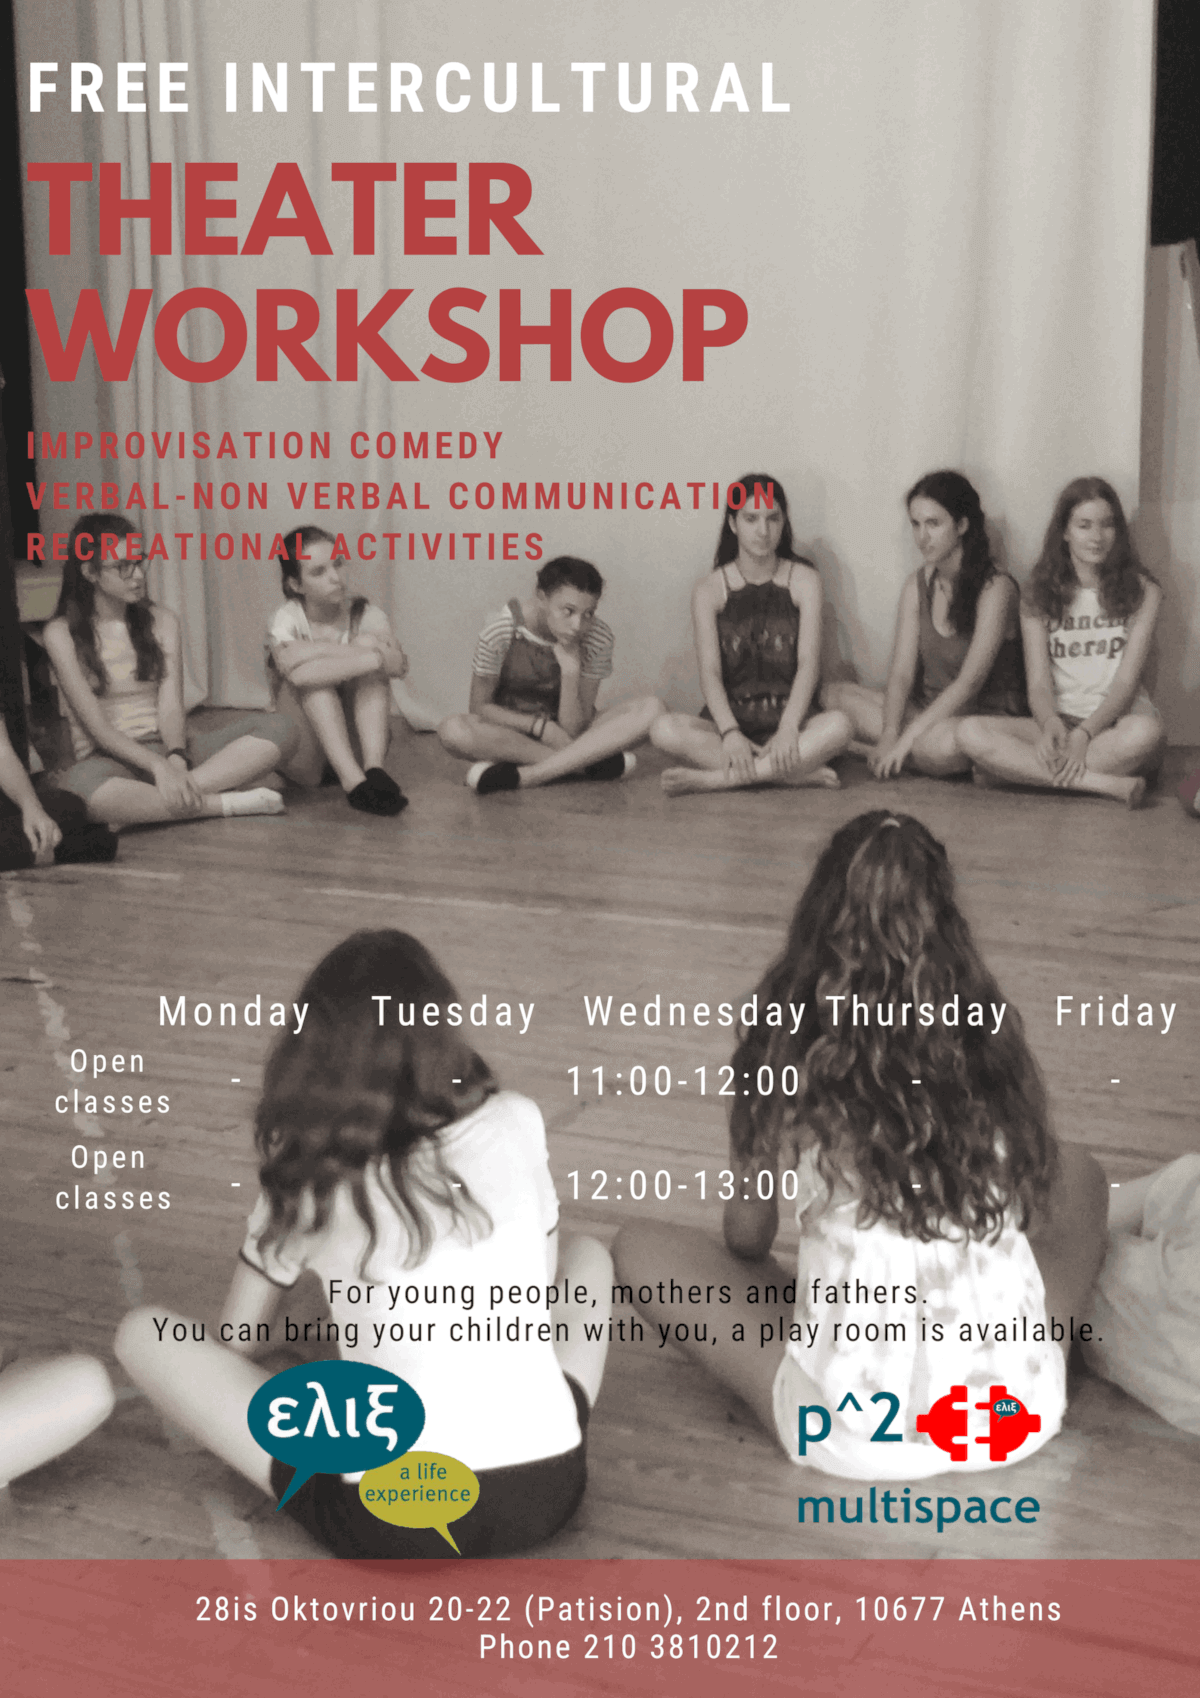 Free intercultural theater workshop by ELIX